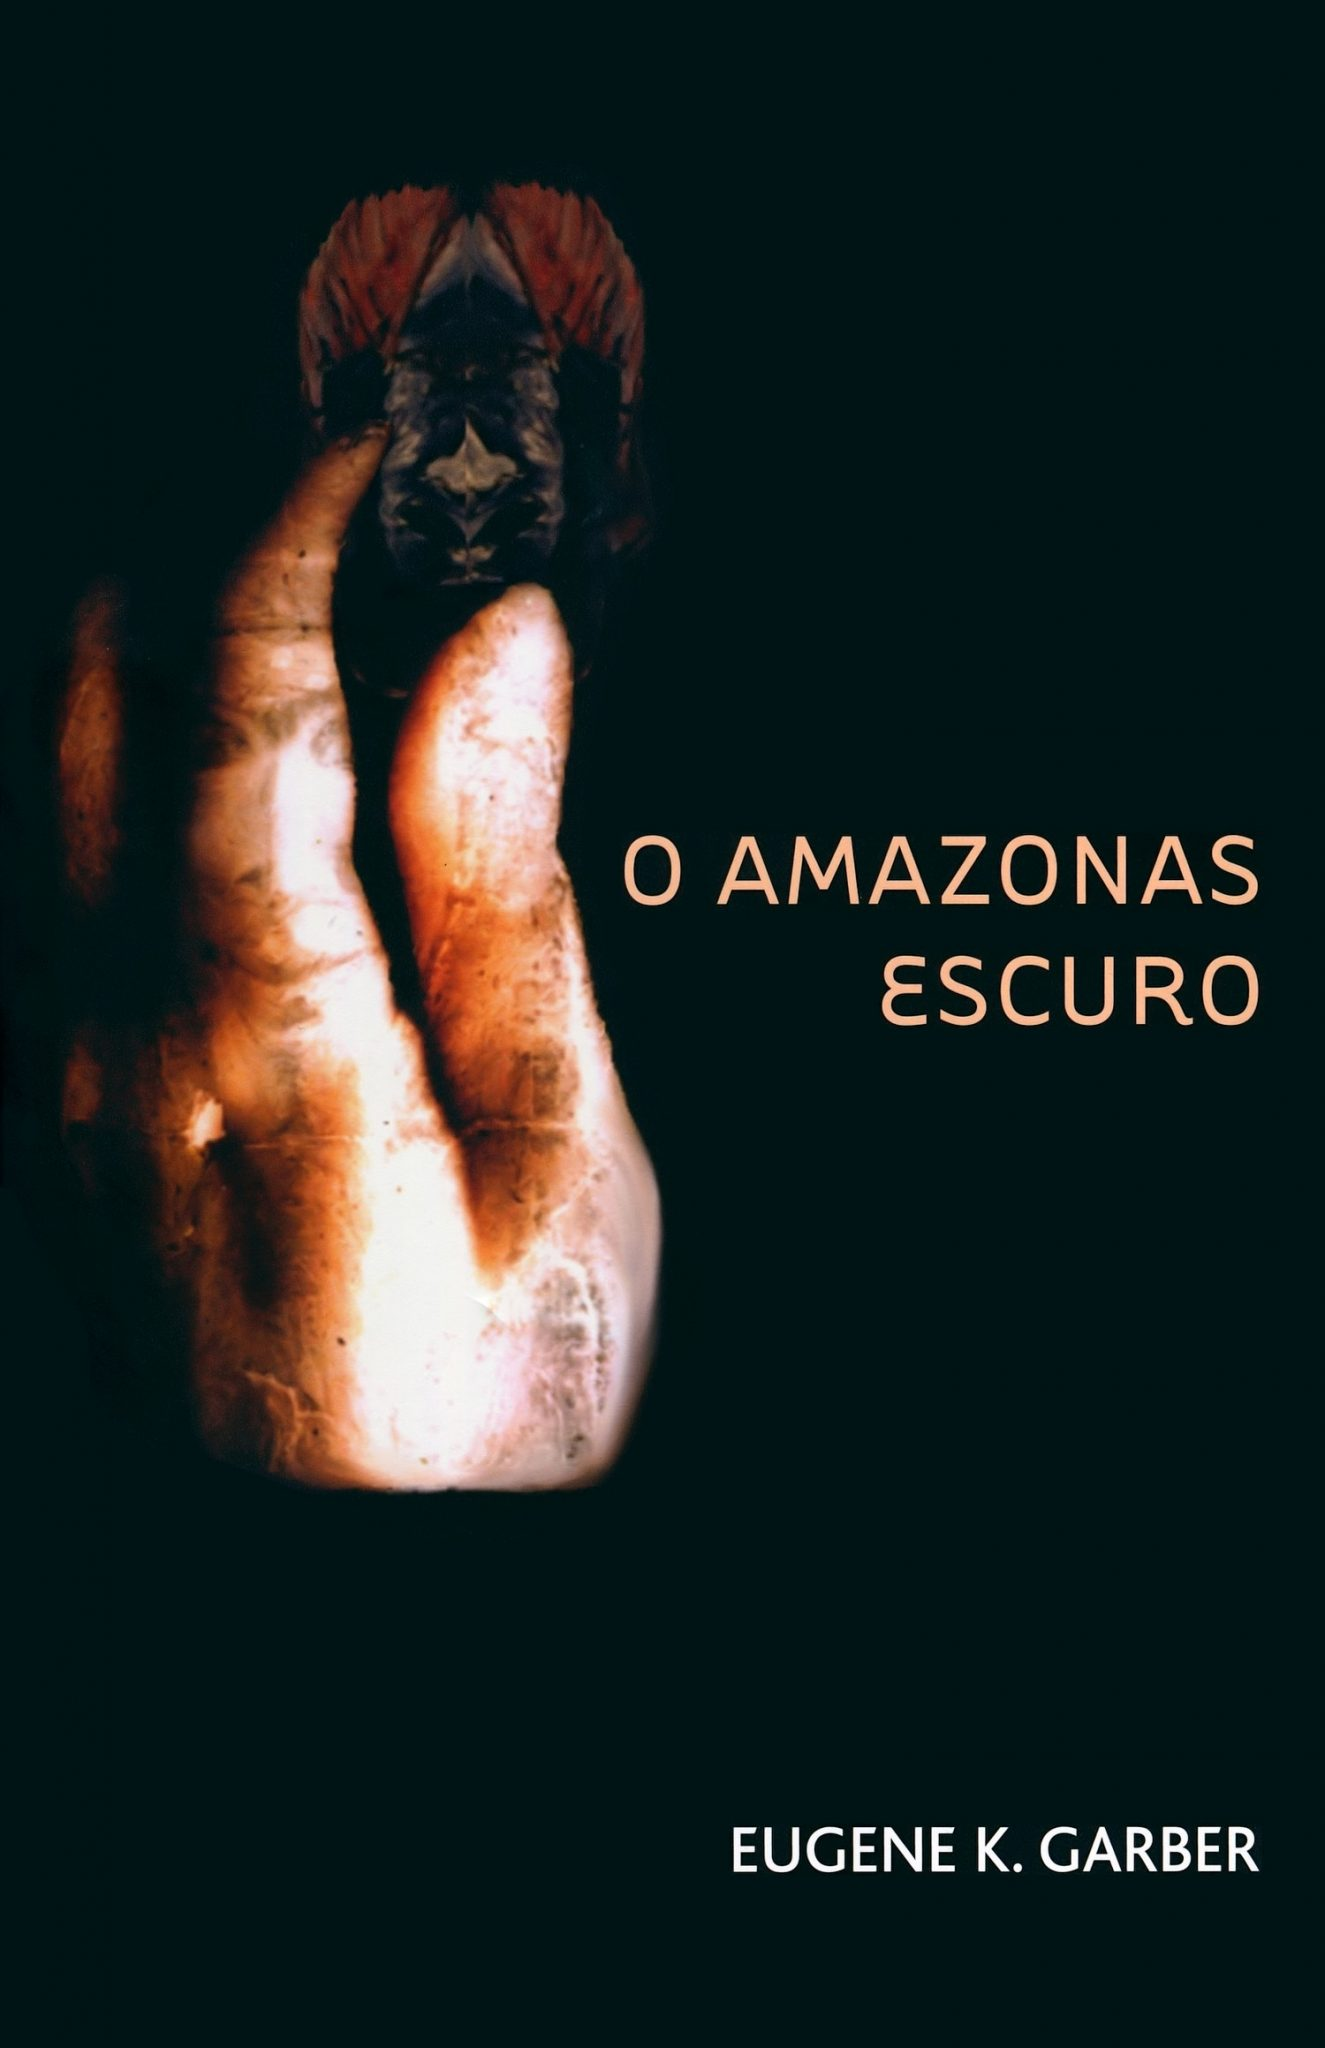 O Amazonas Escuro, Book 2 of The Eroica Trilogy